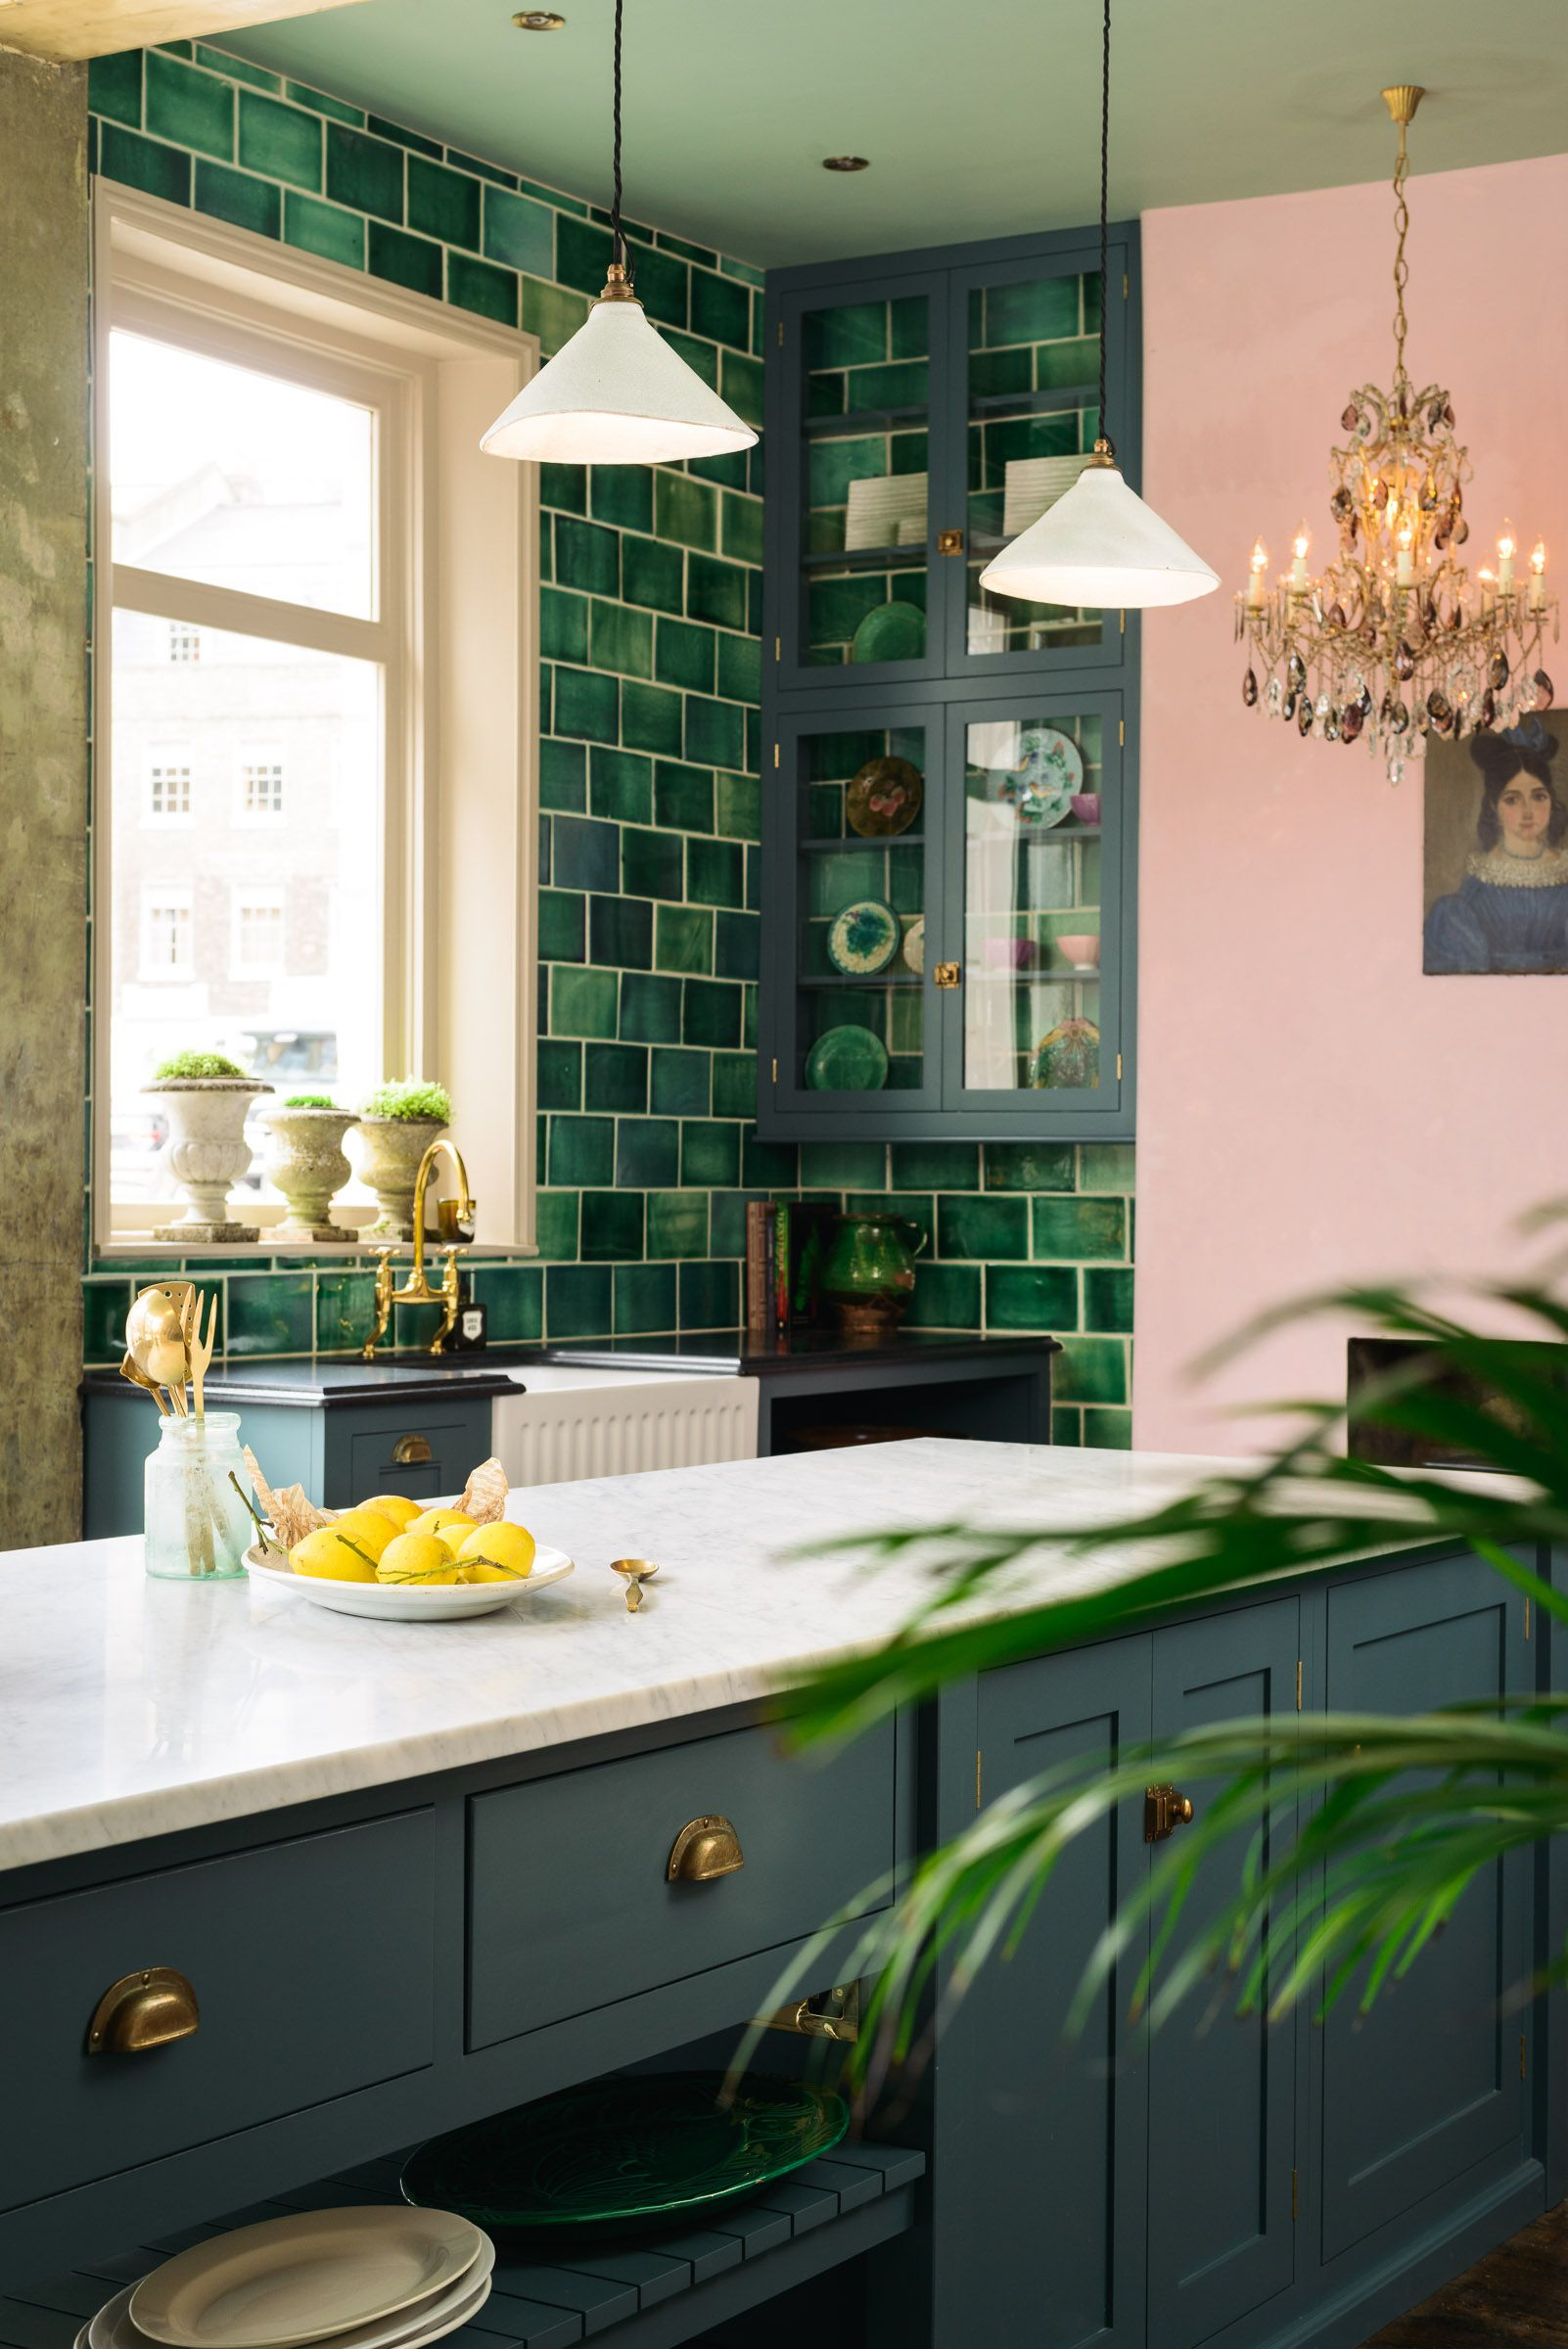 Green Tiles Handmade Ceramic Pendants Oil Paintings Pink Walls And An Antique Chandelier Green Kitchen Decor Interior Design Kitchen Green Kitchen Cabinets